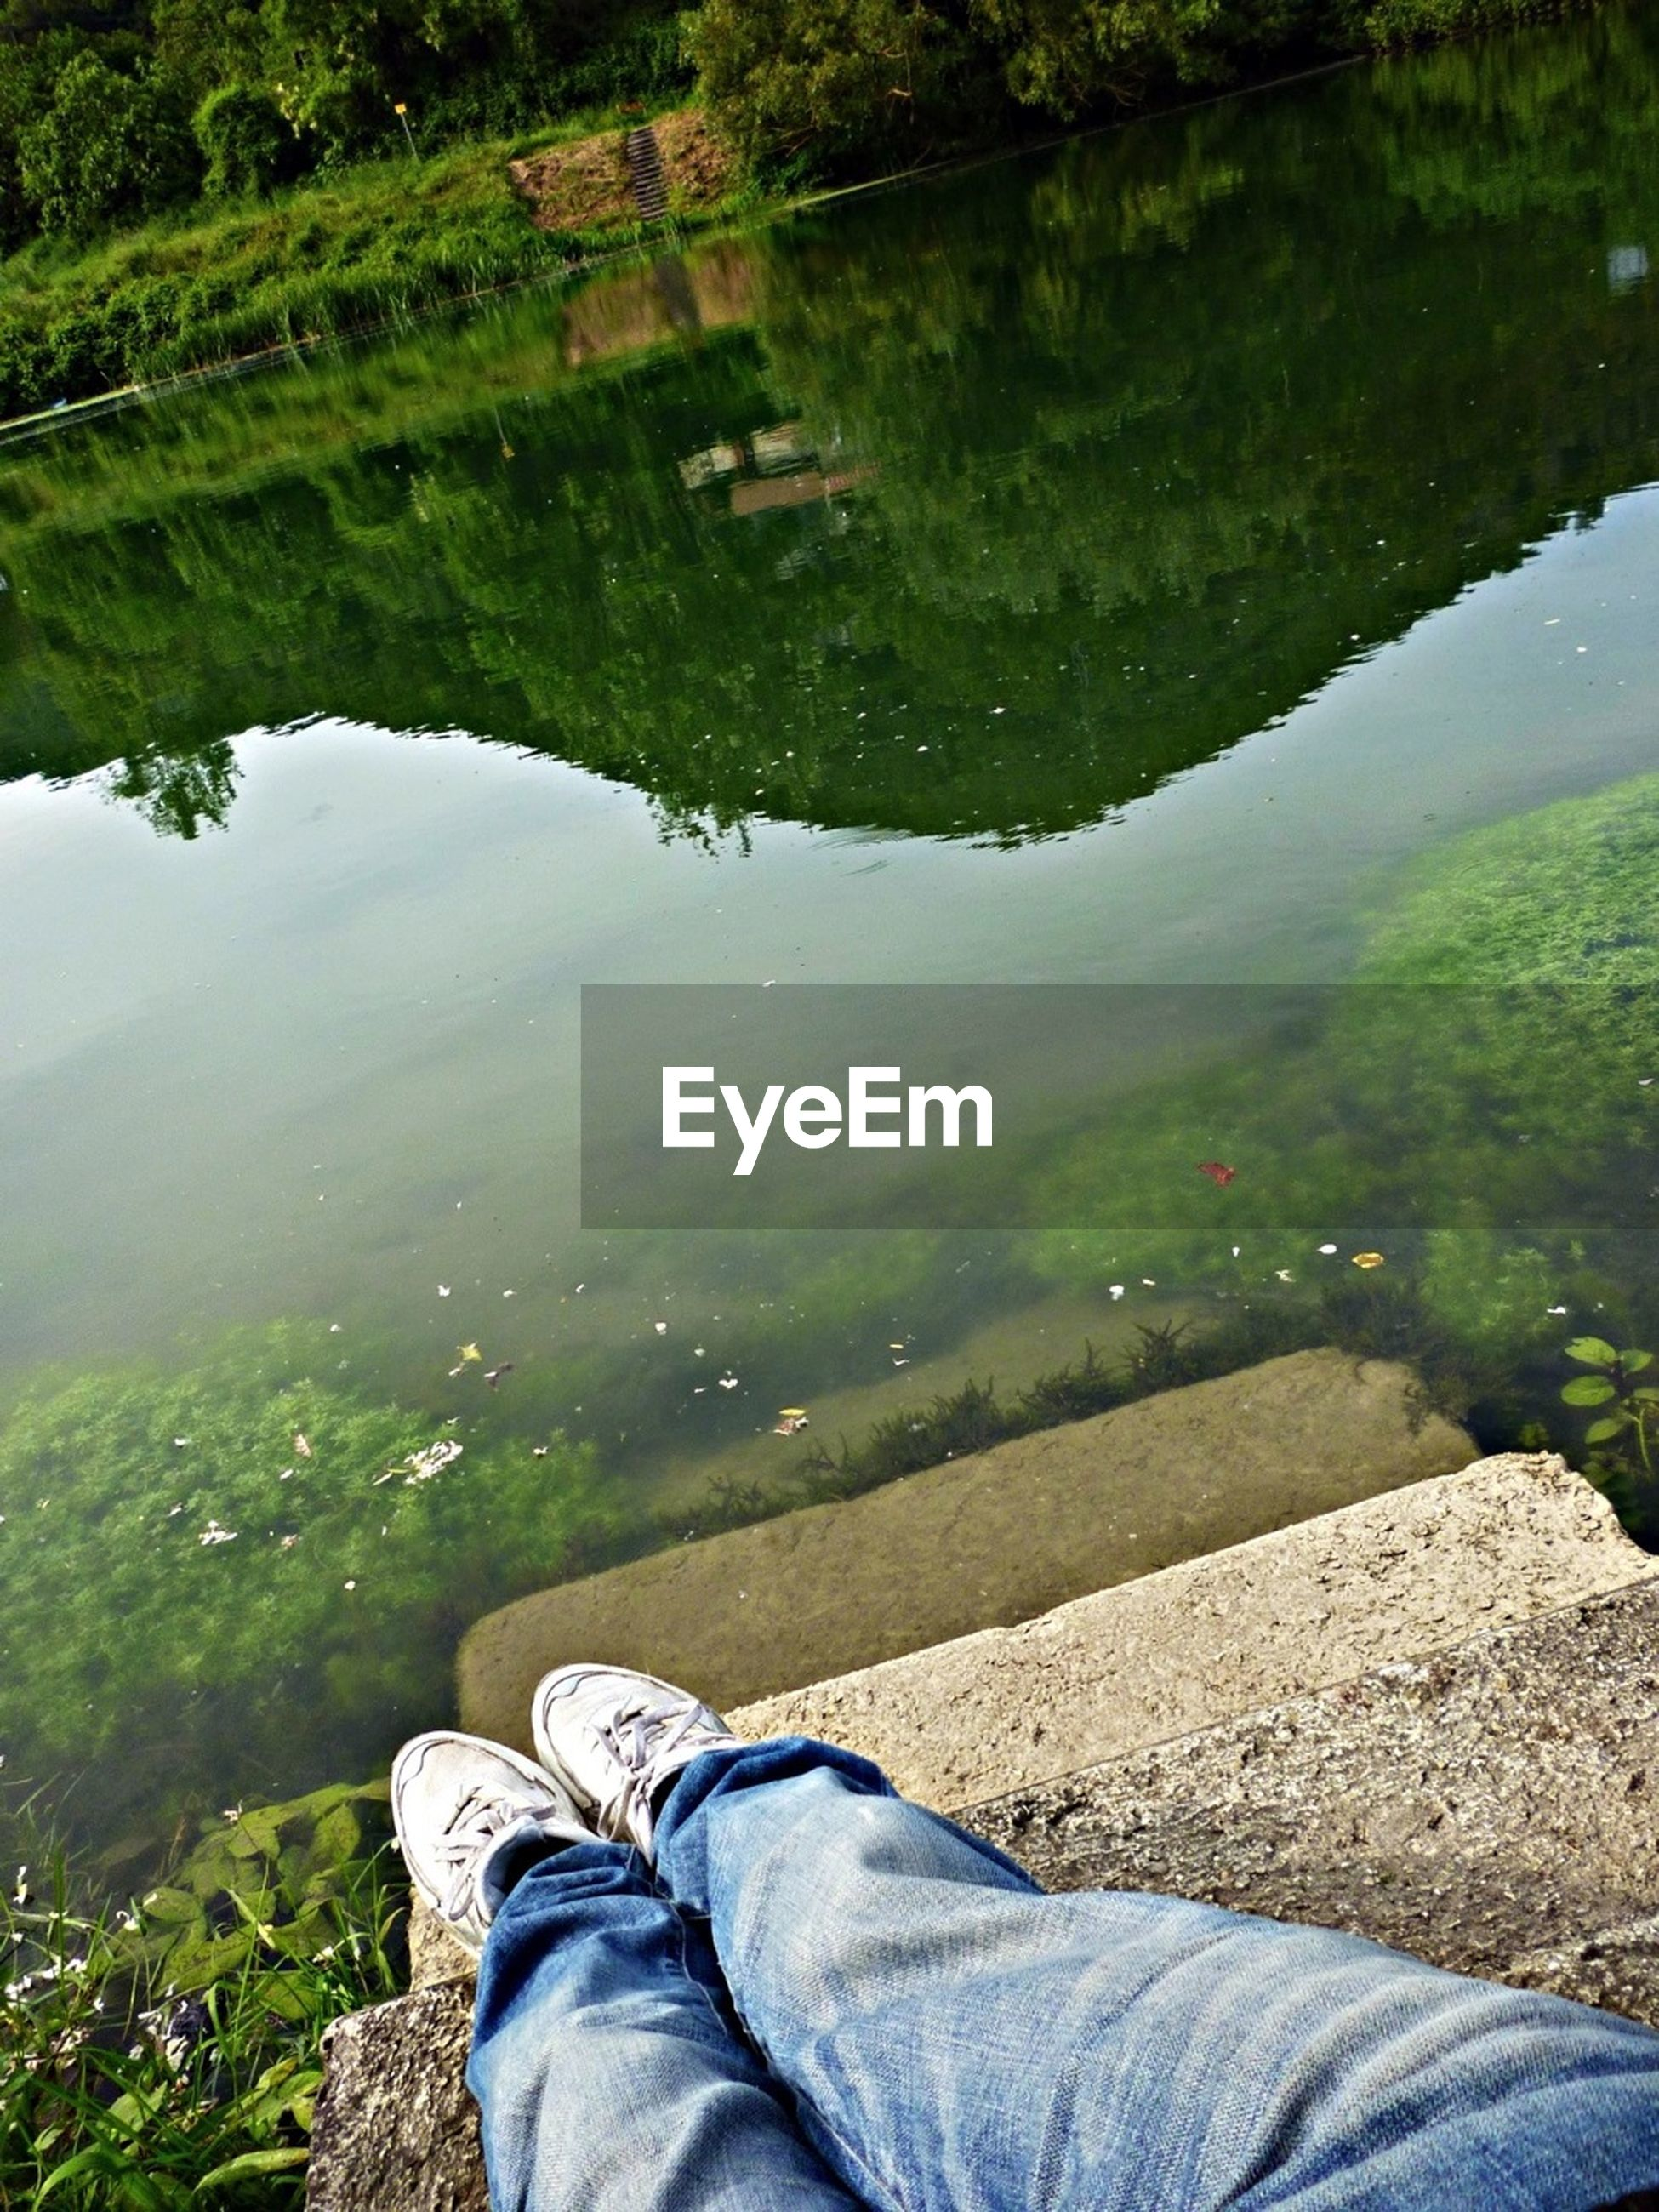 water, low section, person, lake, grass, tranquility, personal perspective, relaxation, tranquil scene, leisure activity, shoe, nature, lifestyles, reflection, men, beauty in nature, high angle view, scenics